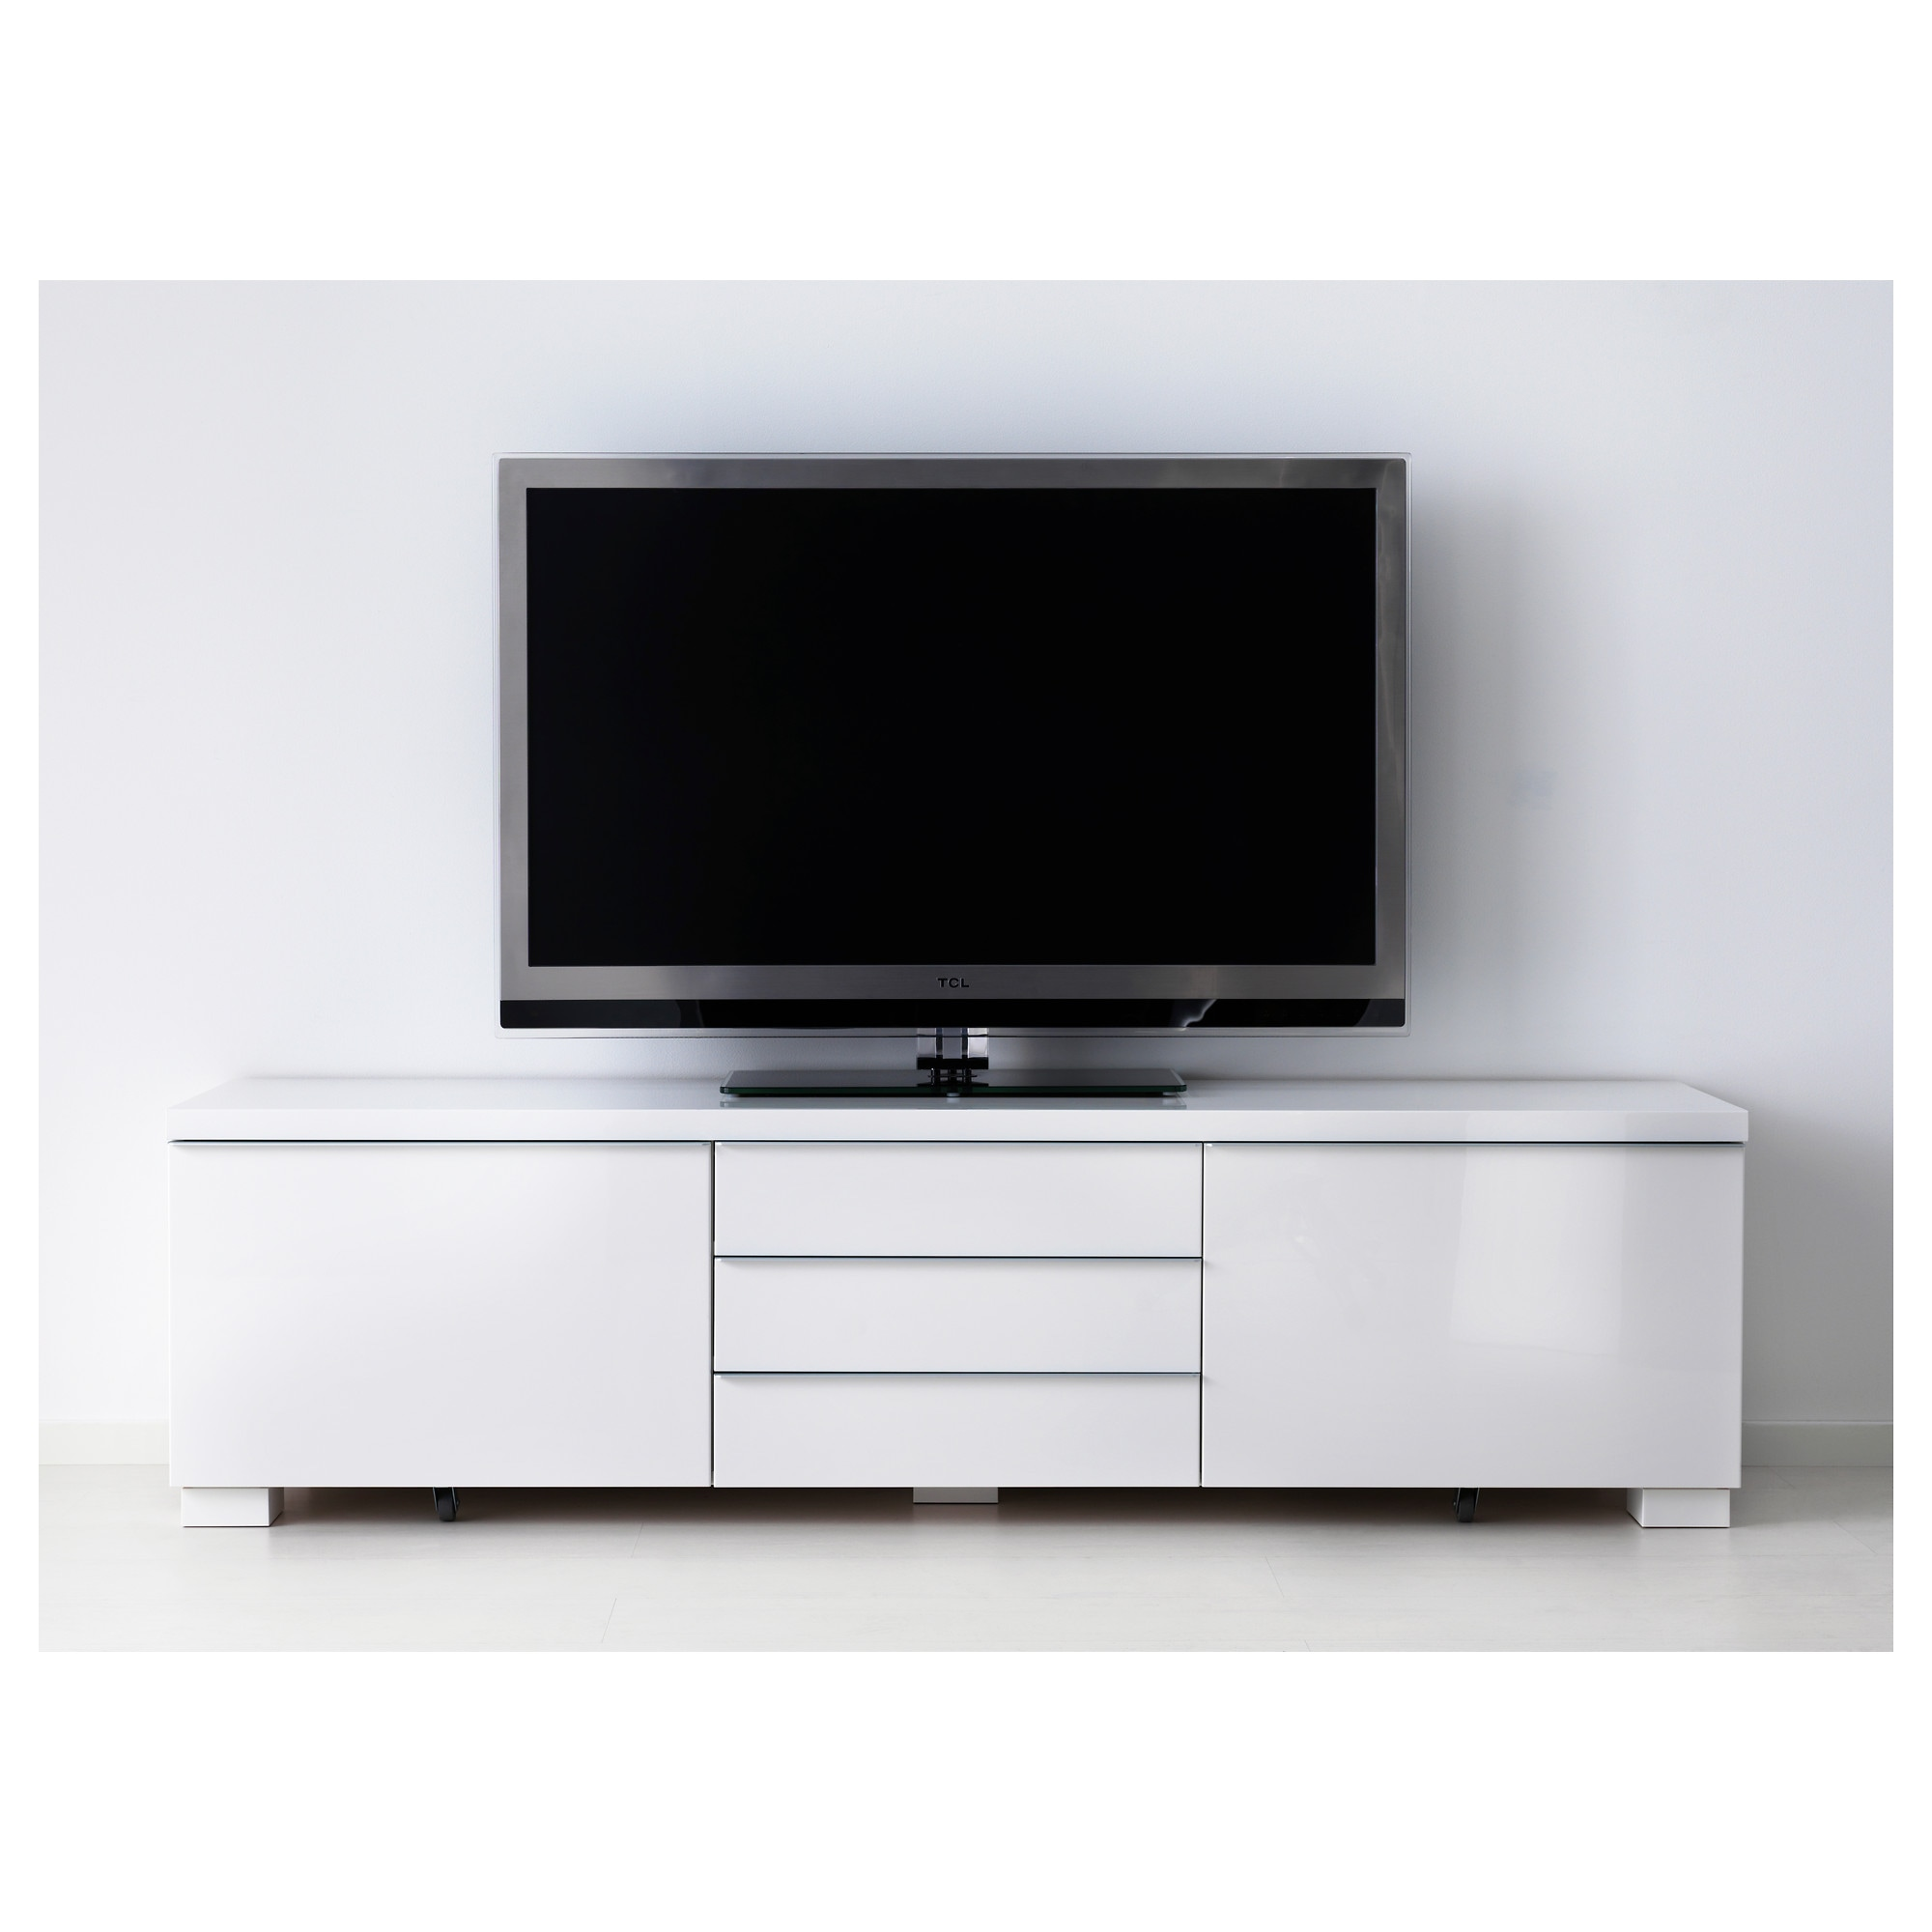 best burs banc tv ikea - Ikea Meuble Tv Blanc